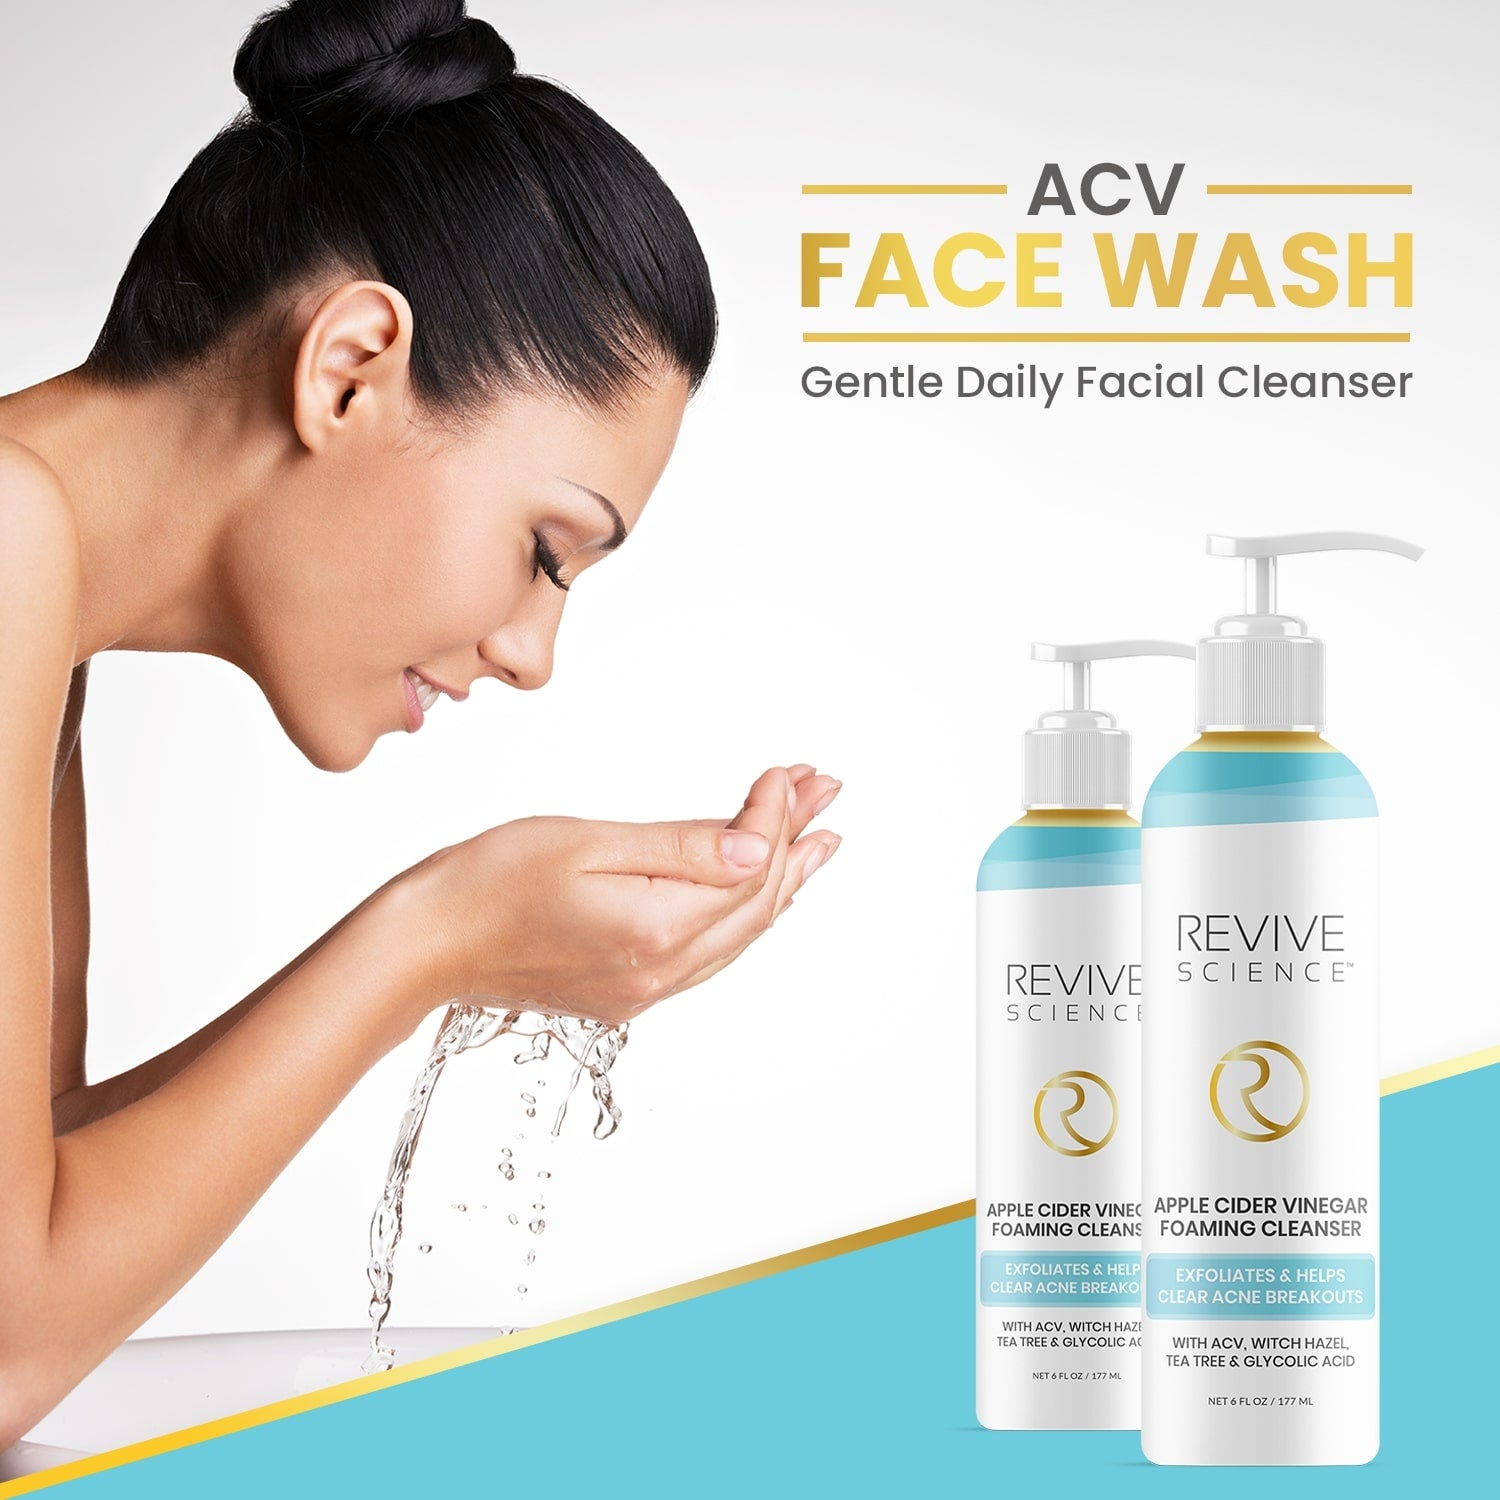 Revive Science Apple Cider Vinegar Exfoliating Face Wash - Foaming Facial Cleanser with AHA, Glycolic & Witch Hazel for All Skin Types- Helps Reduce Acne Breakout & Blackheads - Face Wash for Women & Men, 6oz